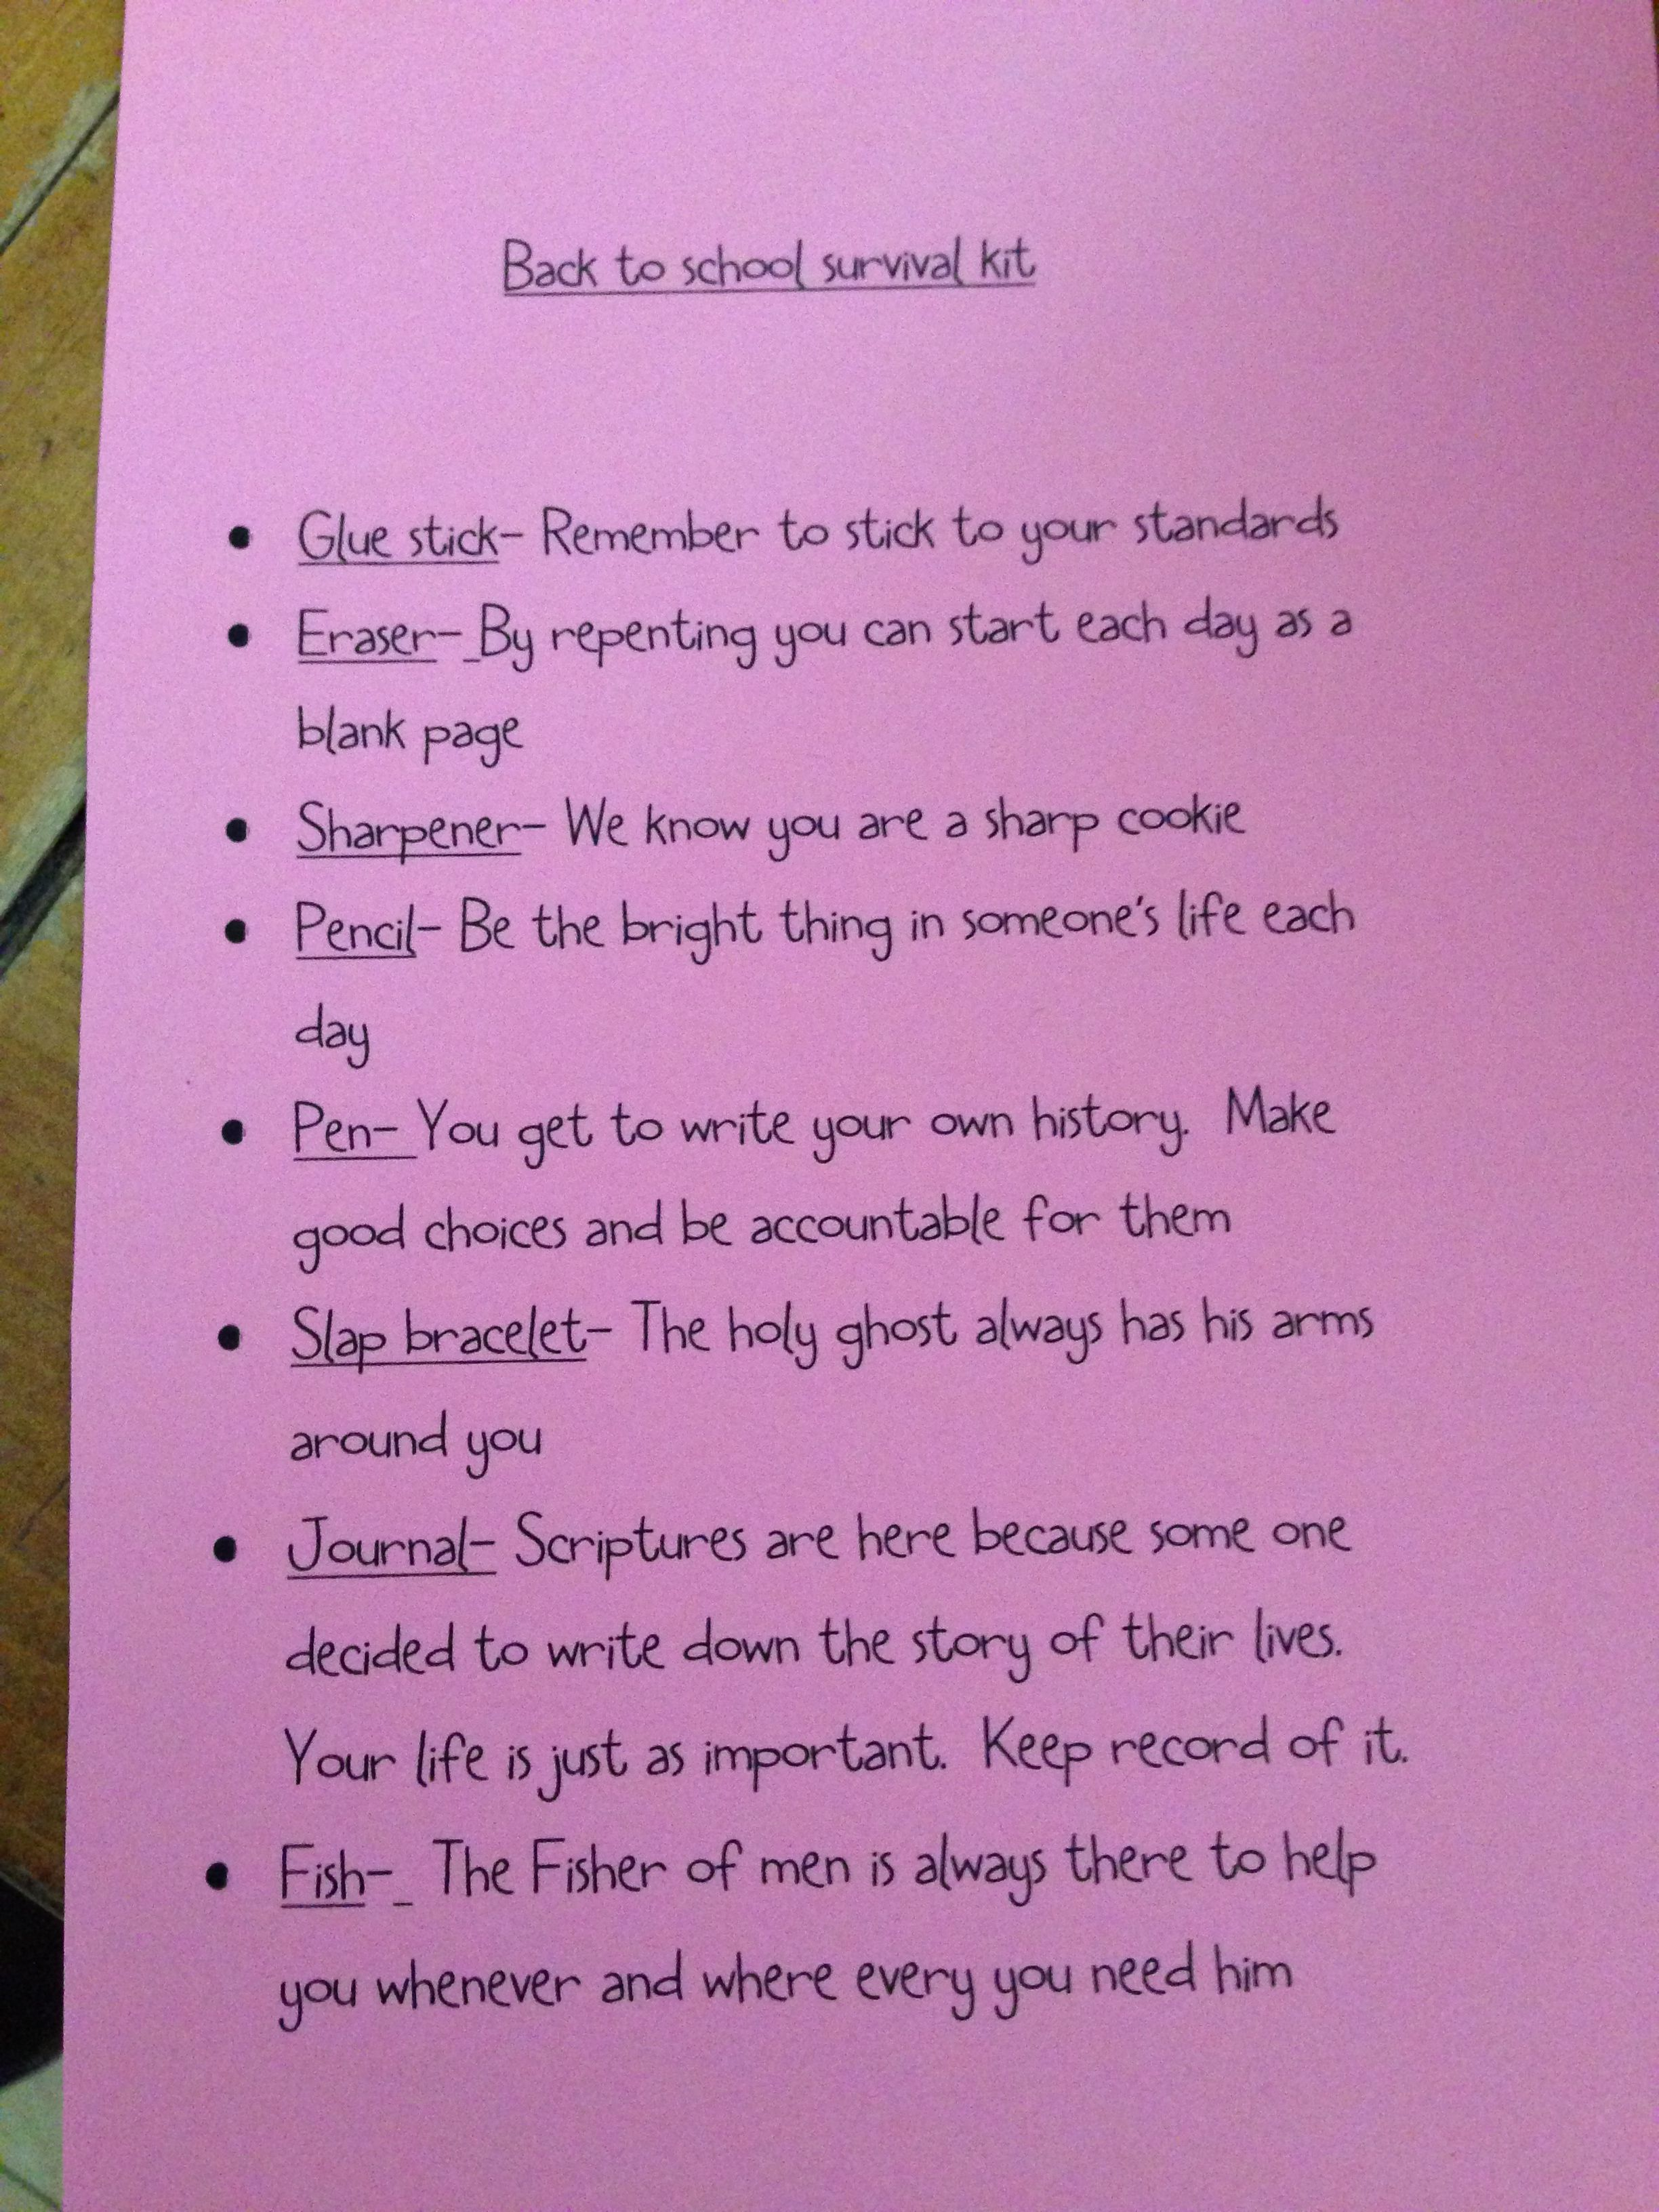 Back to school spiritual survival kit. Would be awesome ...